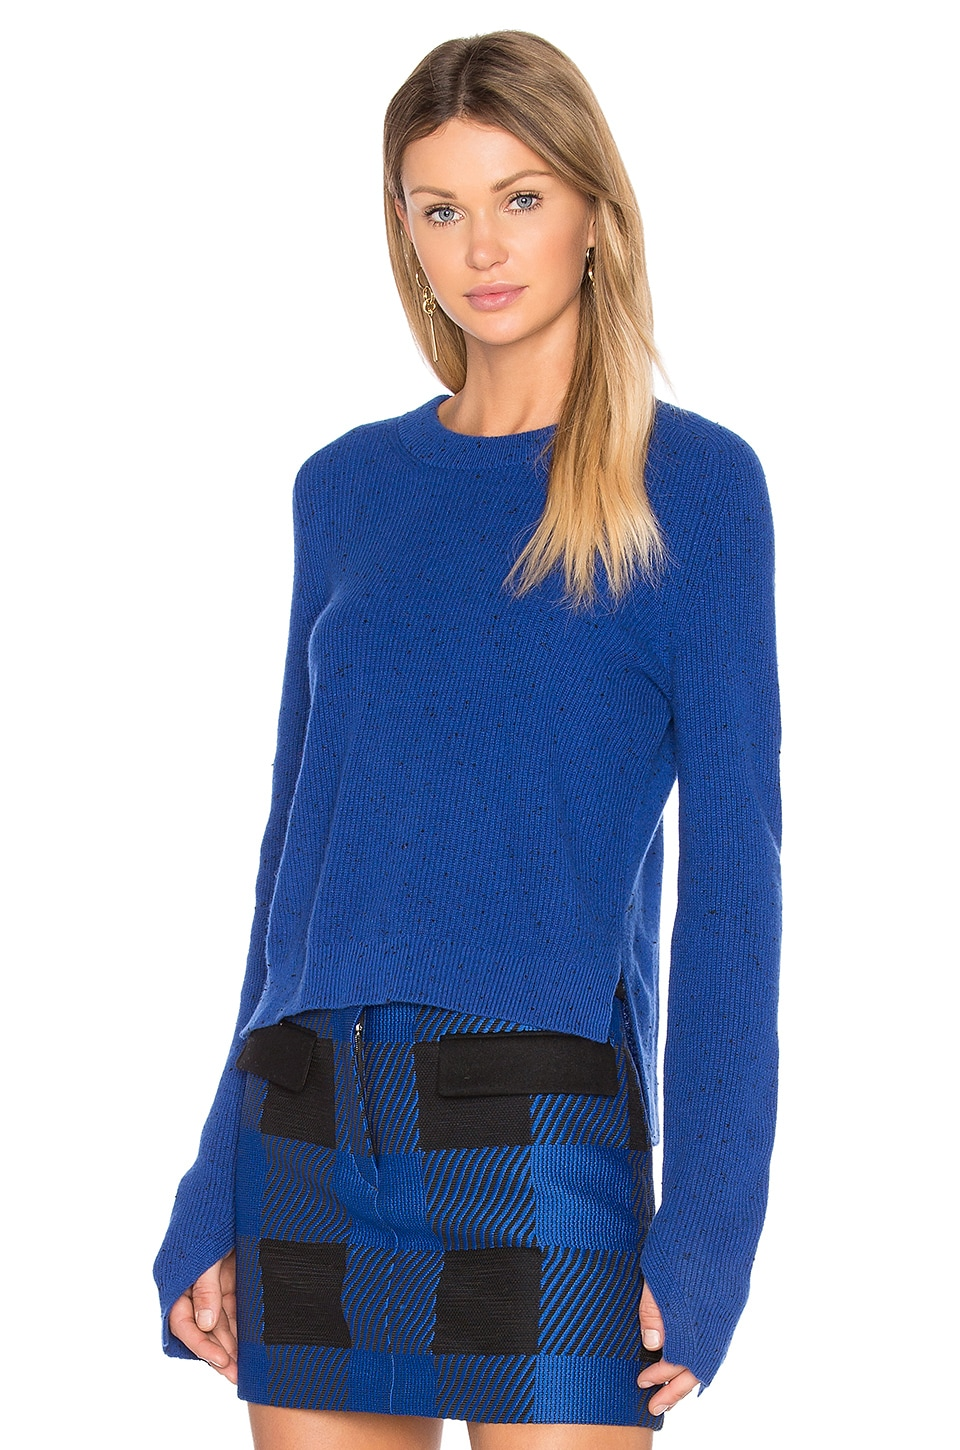 Bright Blue Women S Sweater Coat Nj